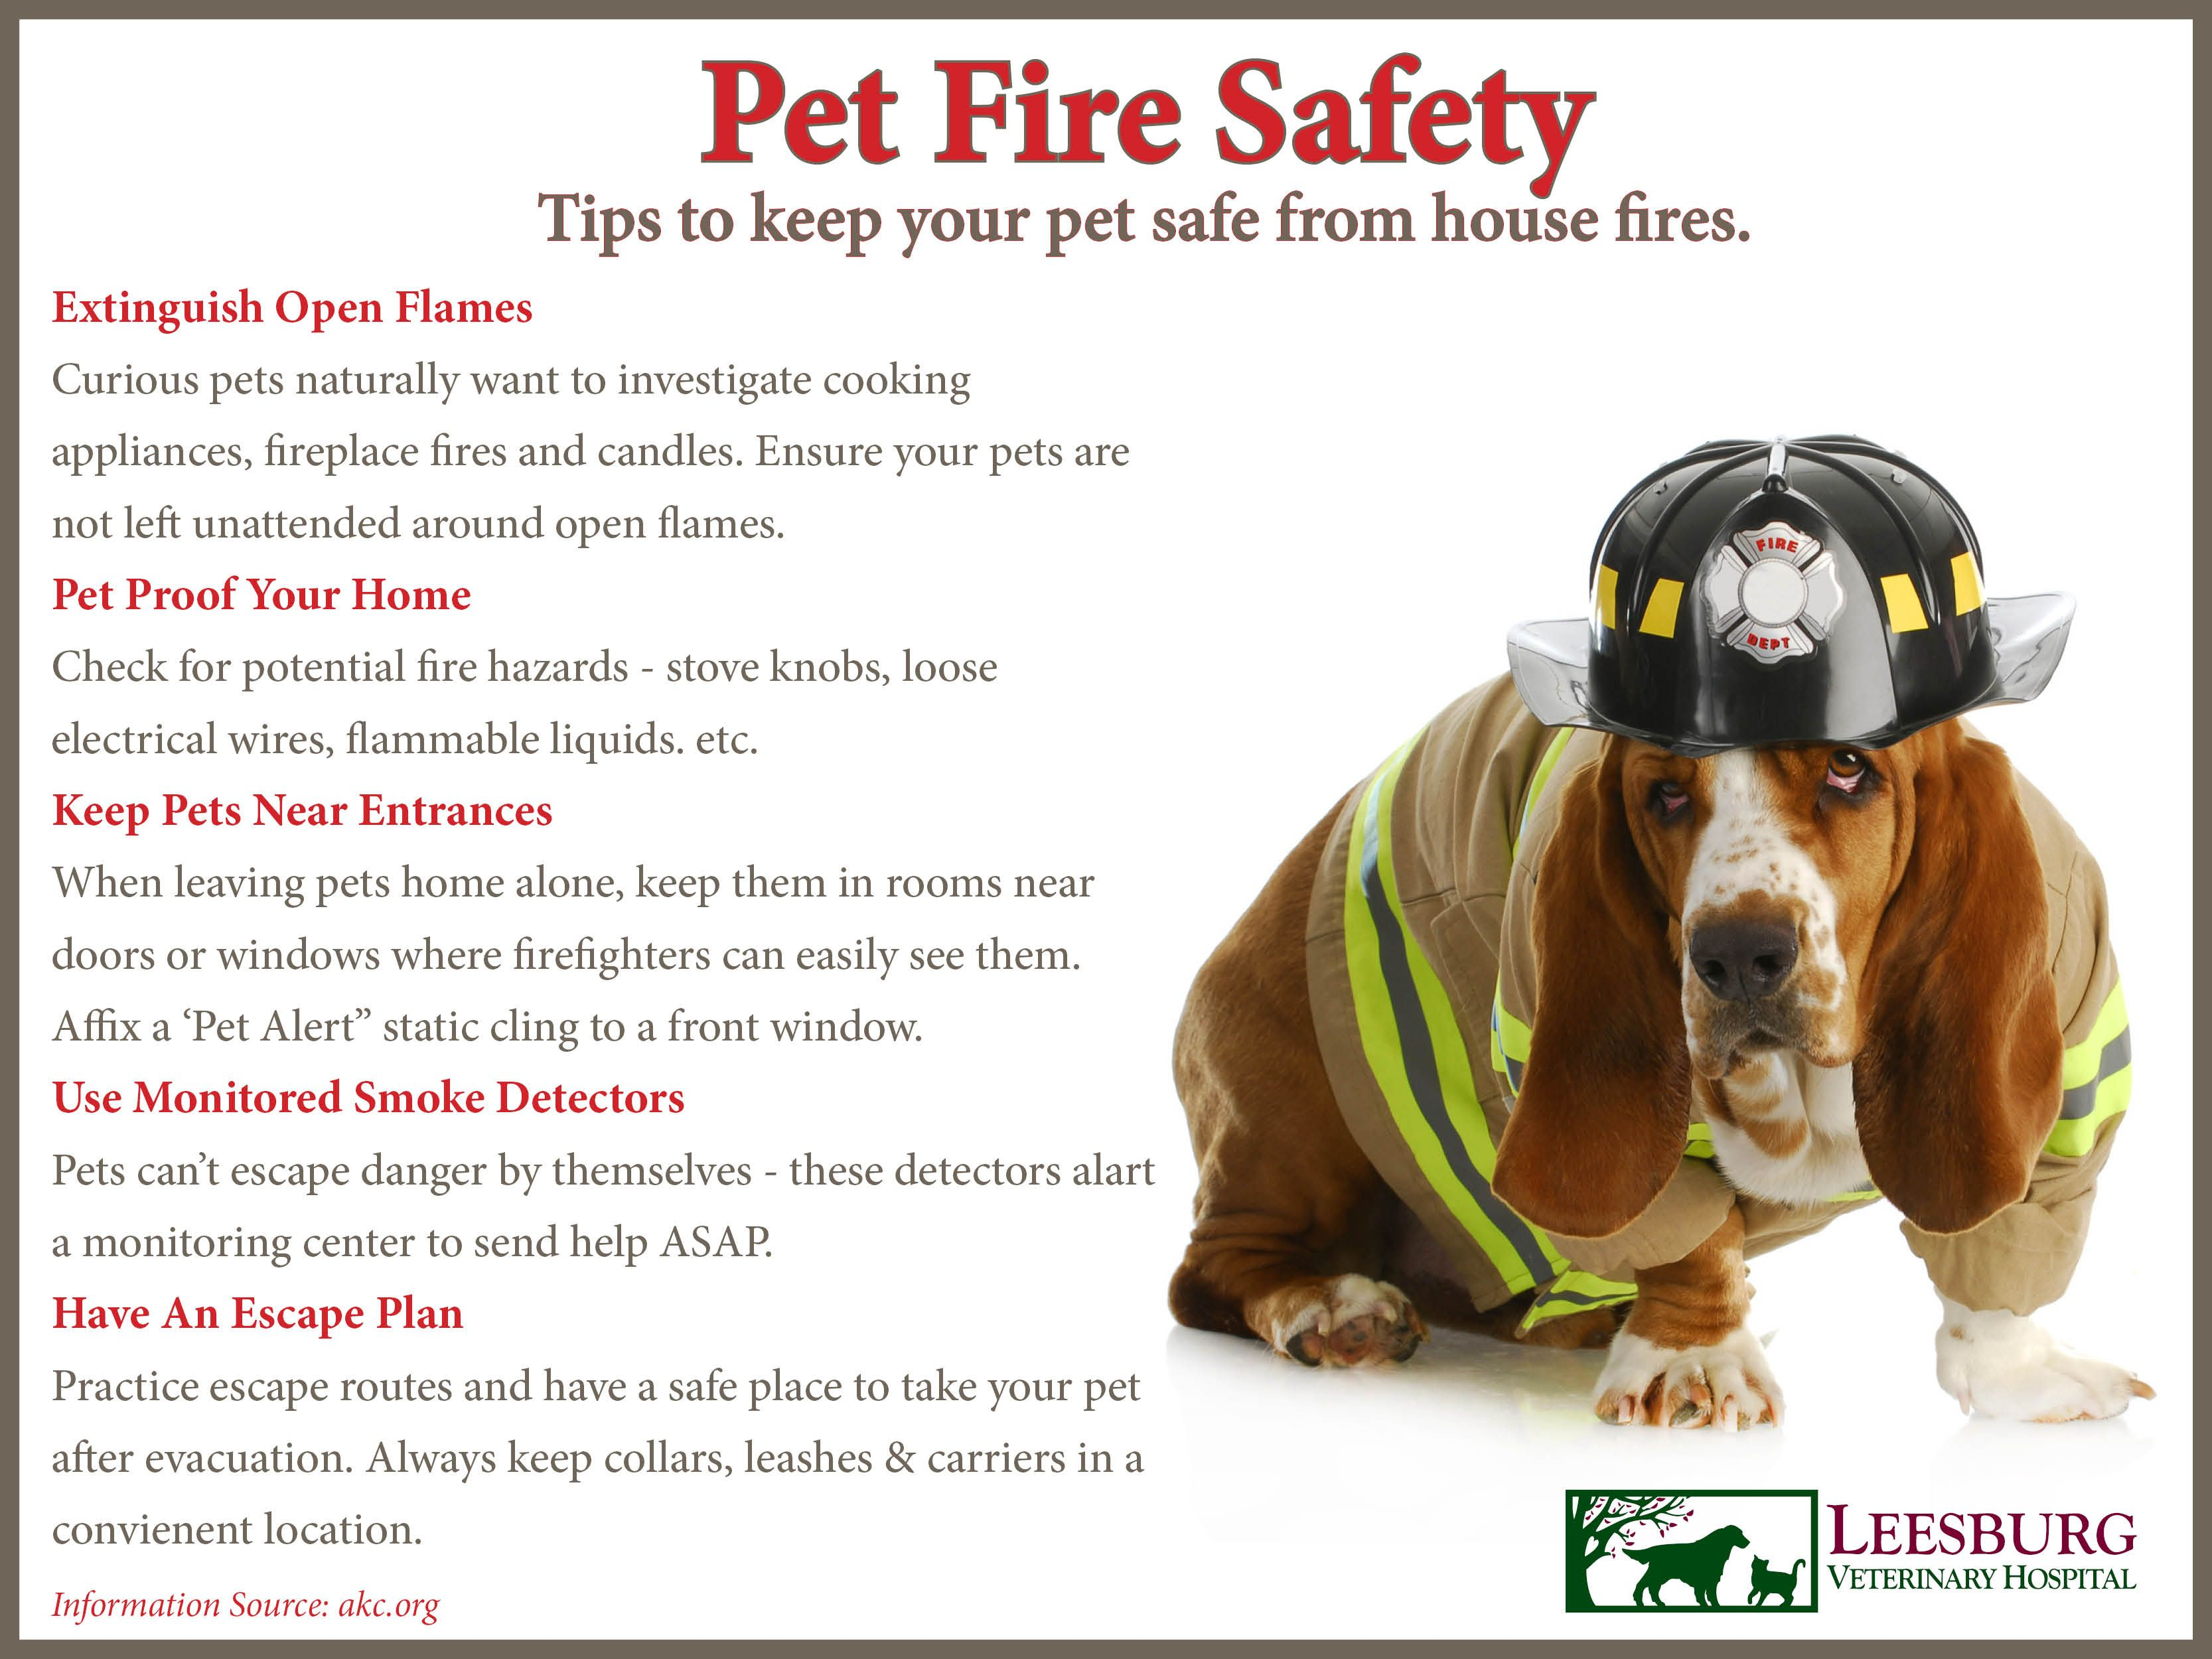 July 15 Declared National Pet Fire Safety Day to Help